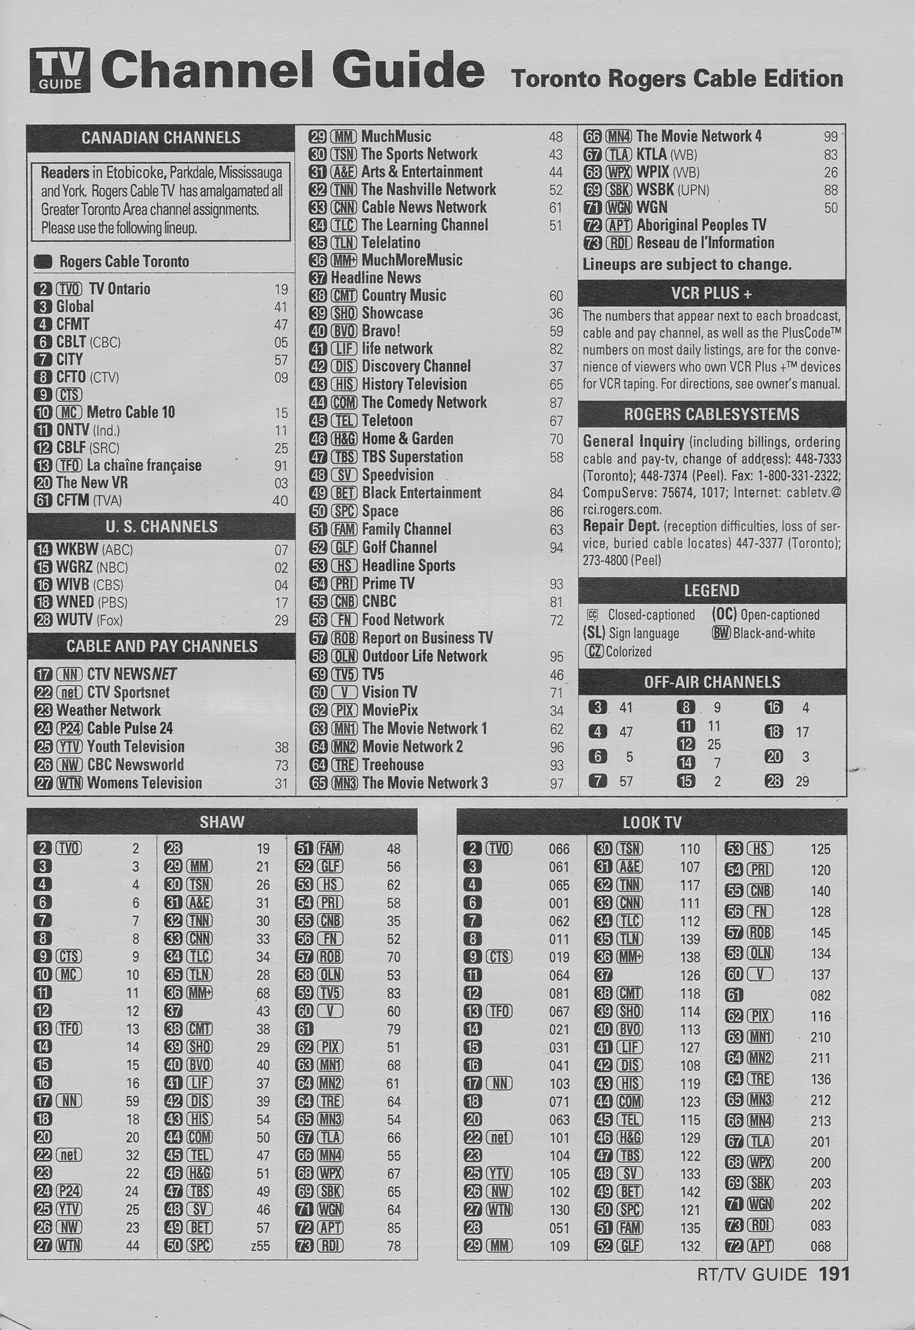 Vintage channel guide from Toronto Rogers Cable Edition of